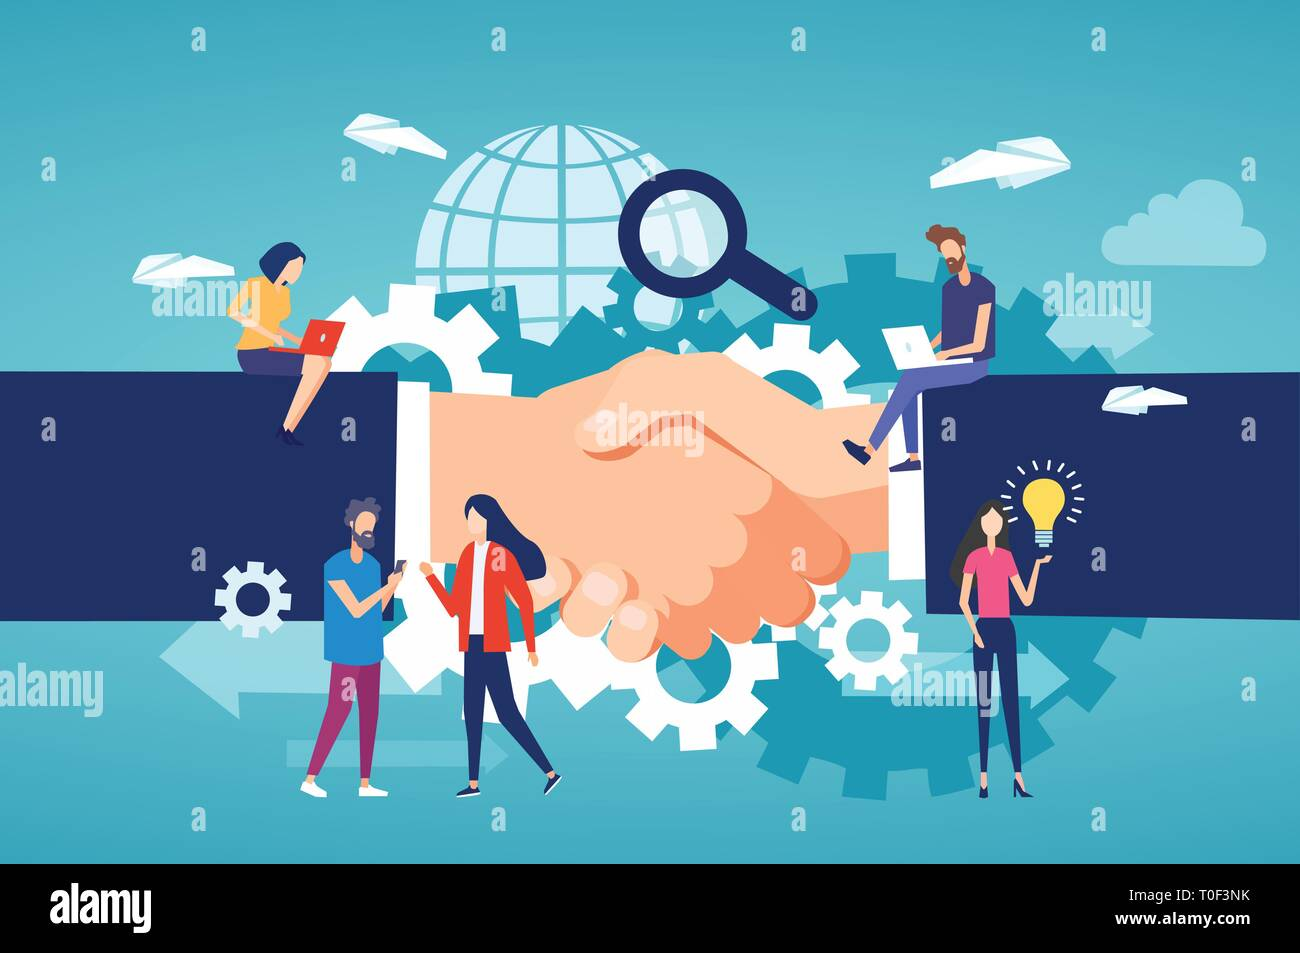 Partnership business collaboration and modern technology concept. Vector of entrepreneurs and freelance community members team working on a handshake  - Stock Vector